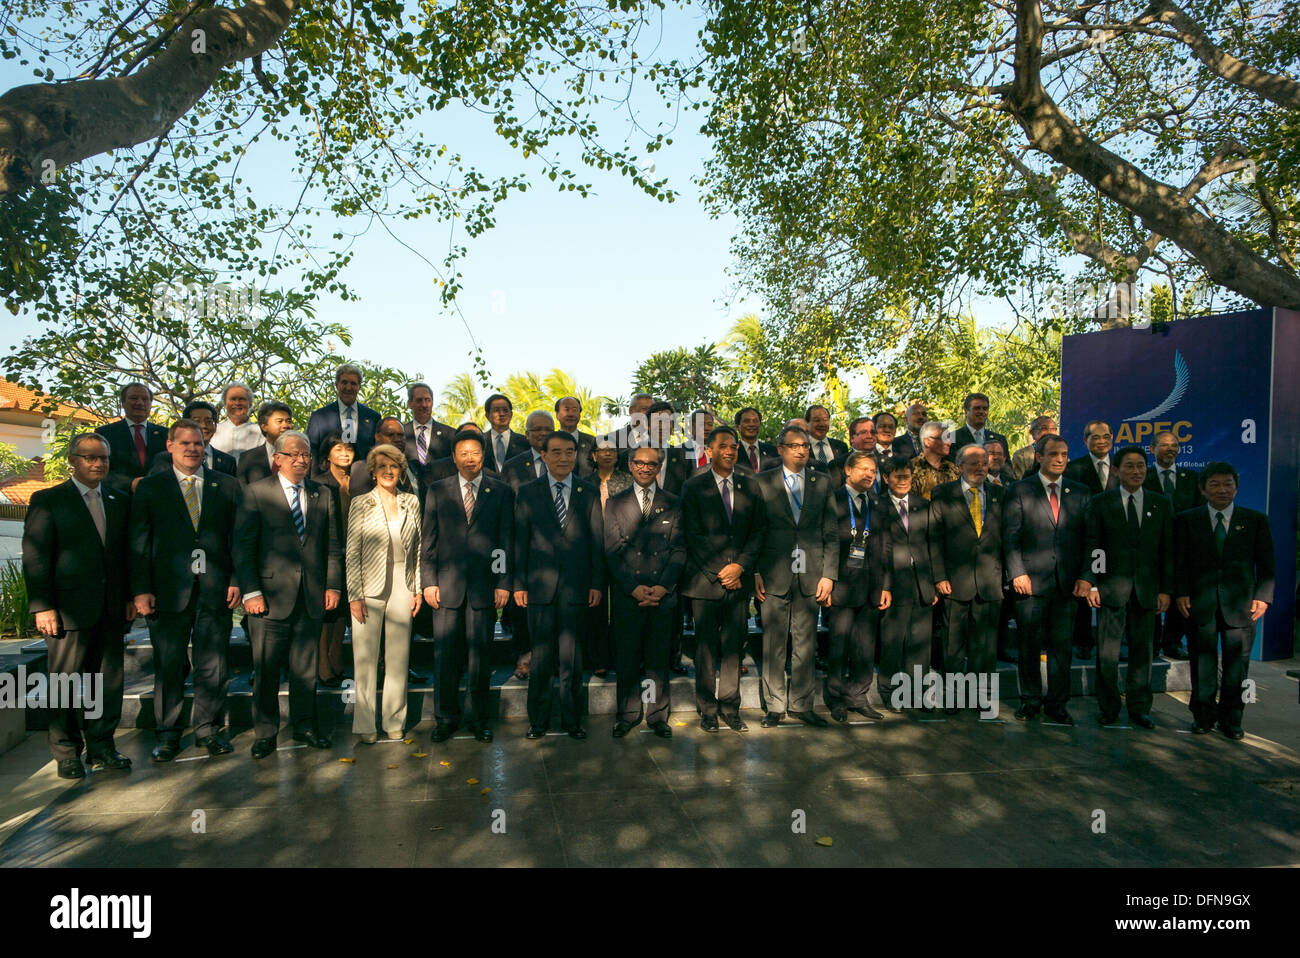 Secretary Kerry Poses for APEC Ministerial Meeting Family Photo - Stock Image